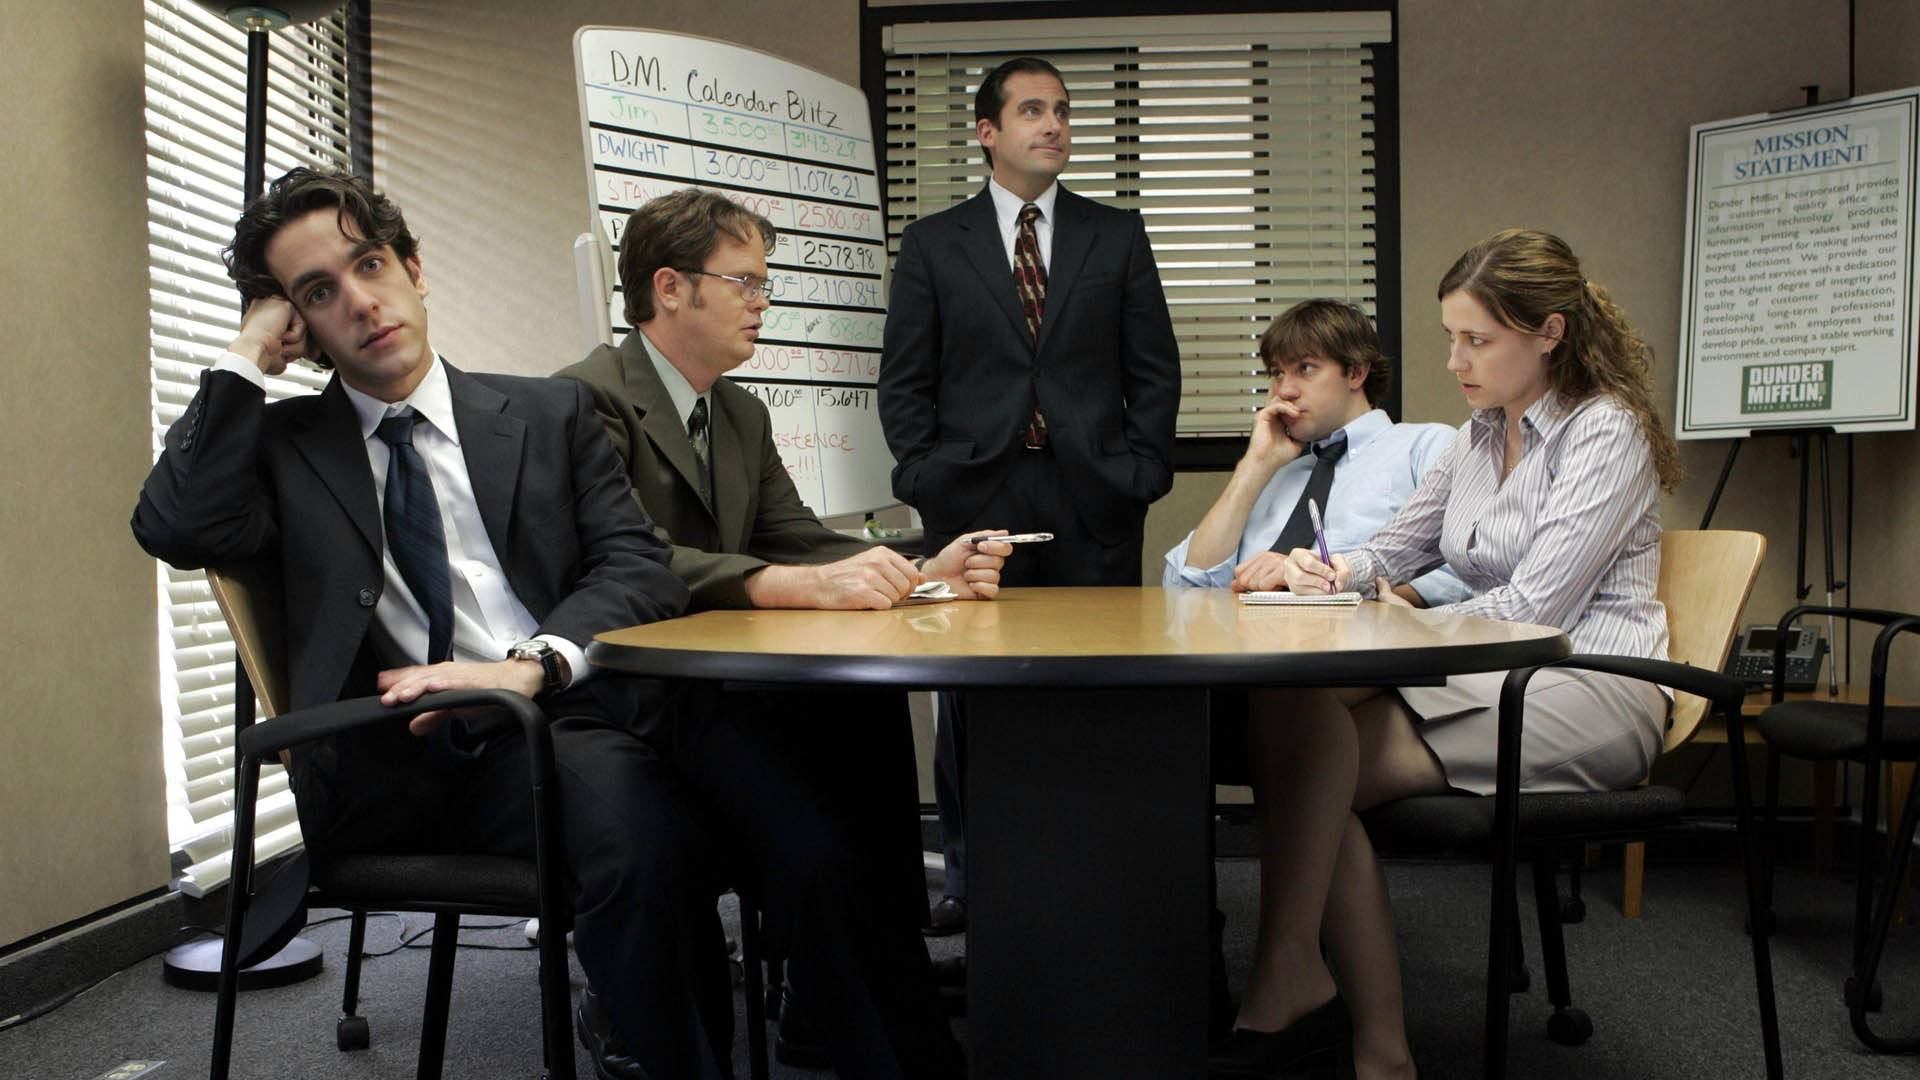 The Office: 7 Relatable Workplace Moments